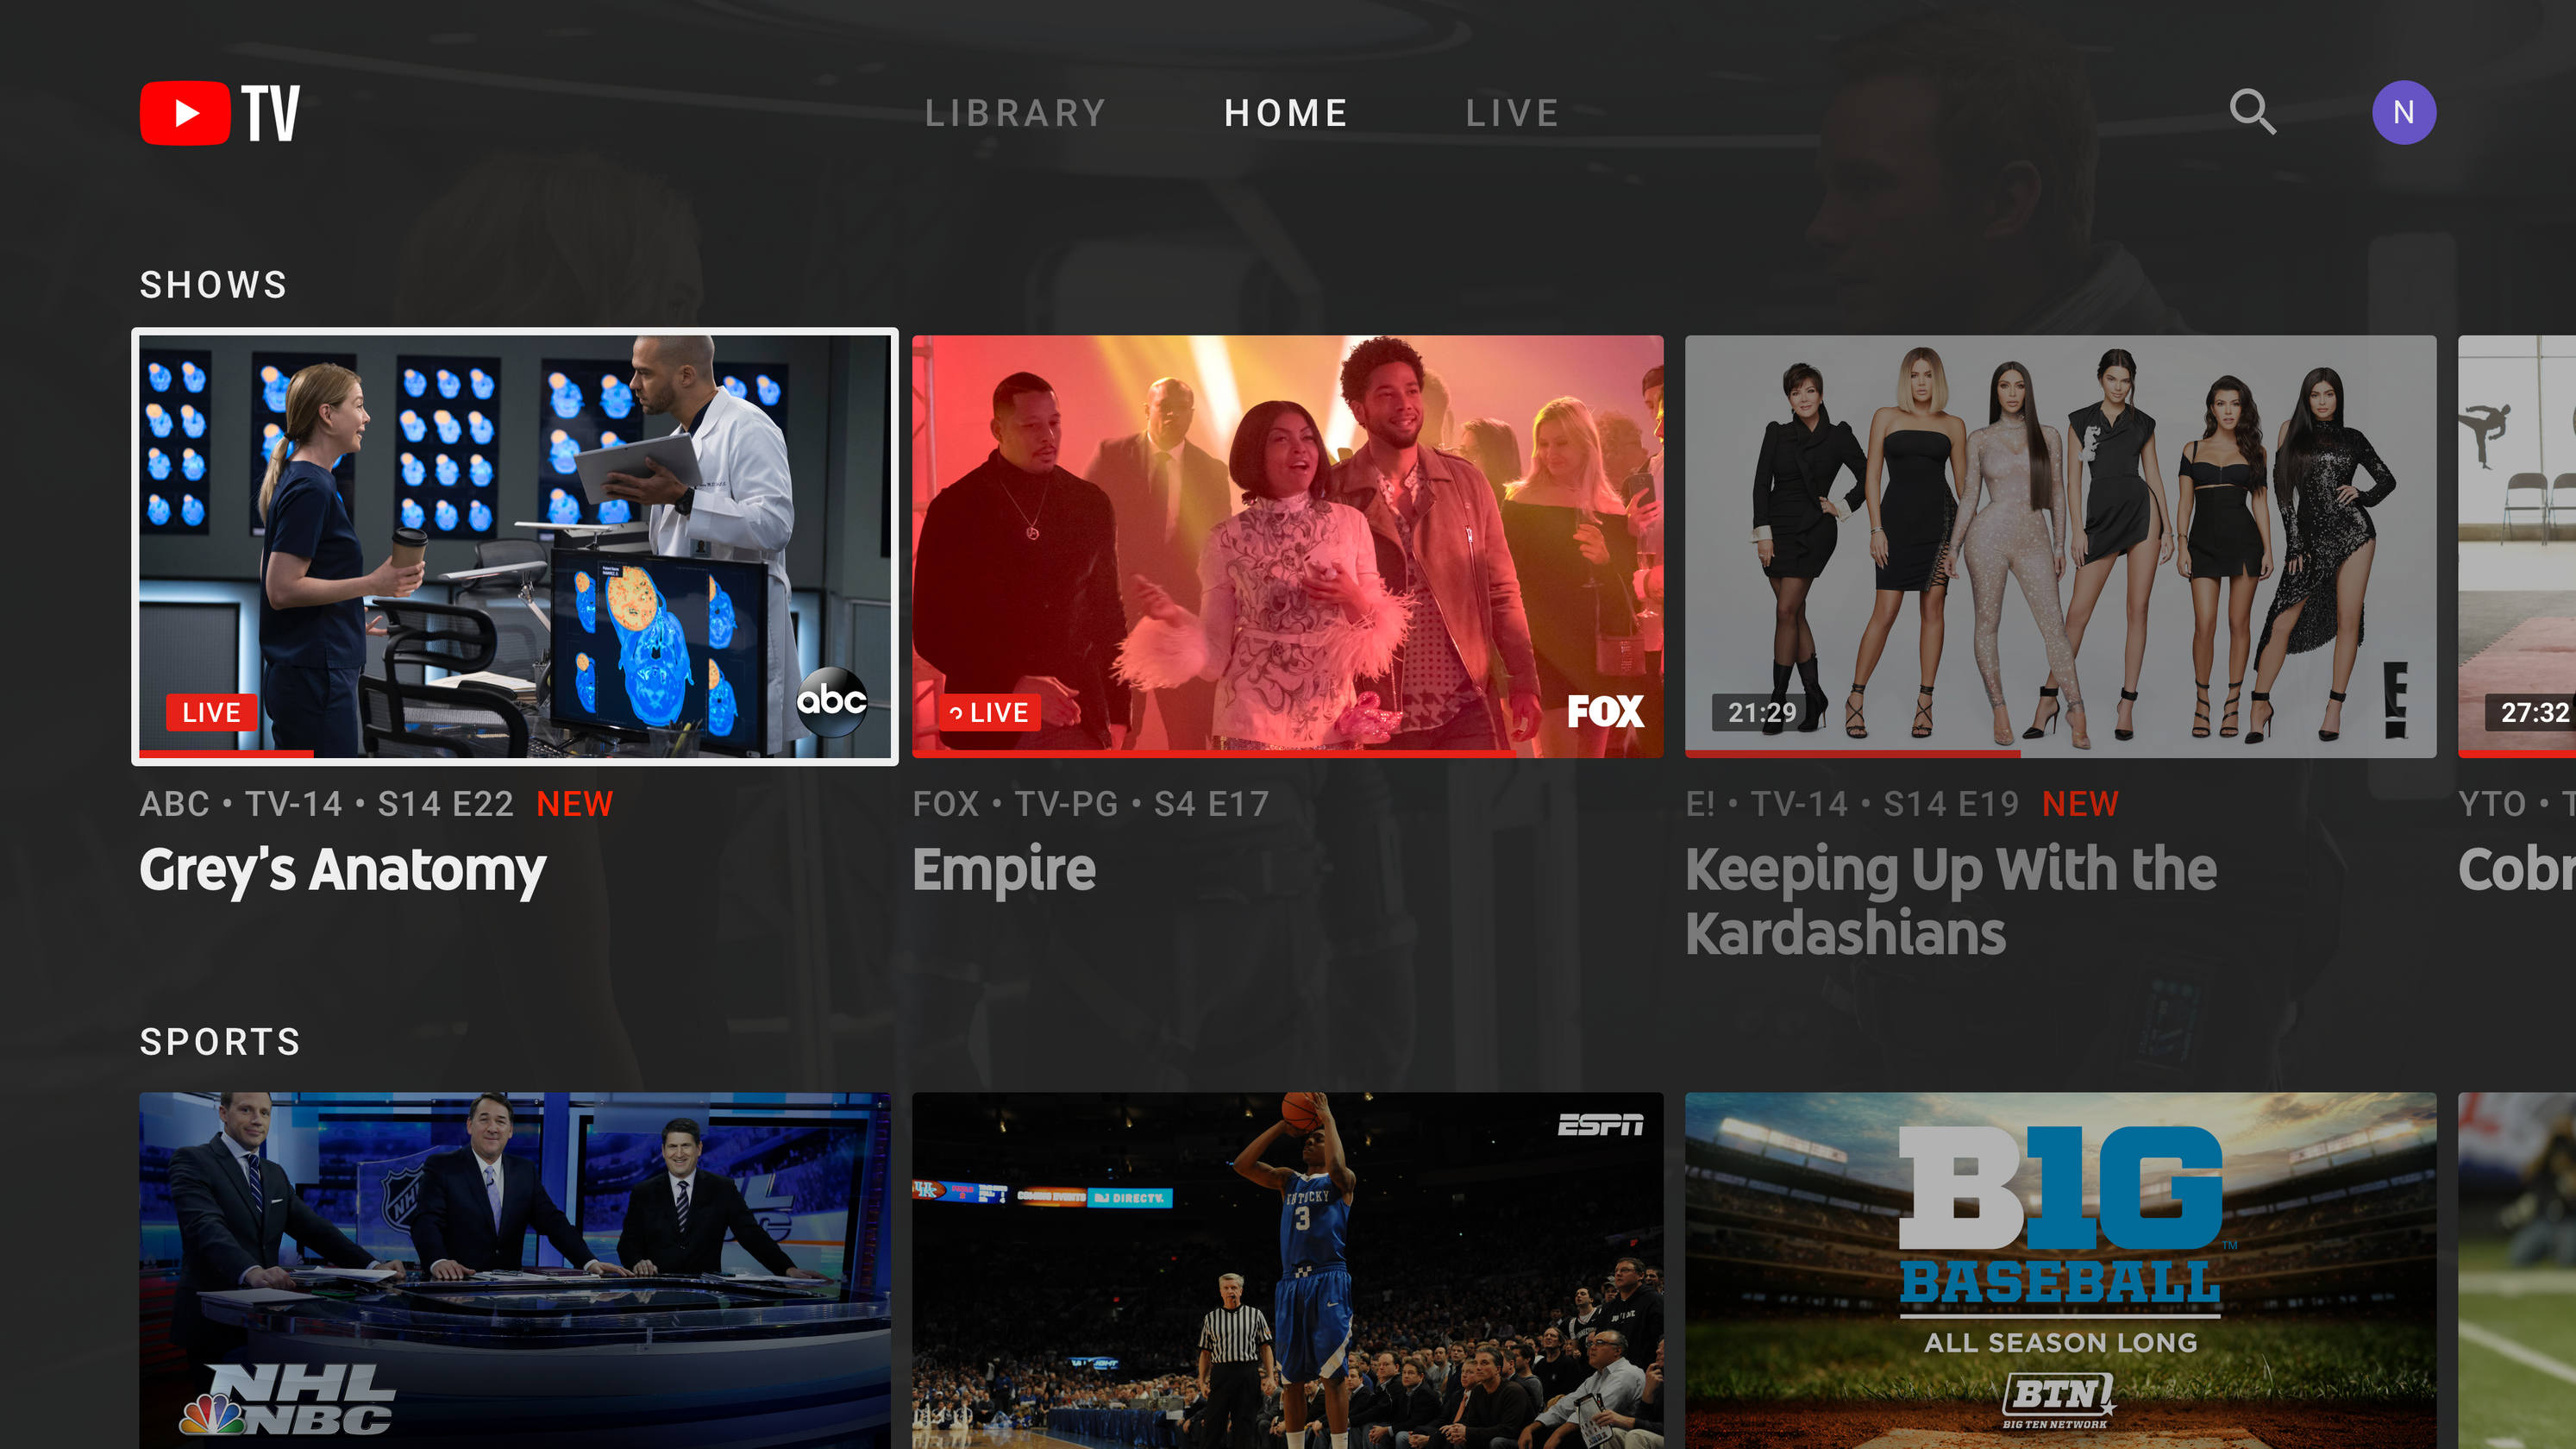 Free Showtime subscriptions for Youtube TV subscribers: Are you eligible?